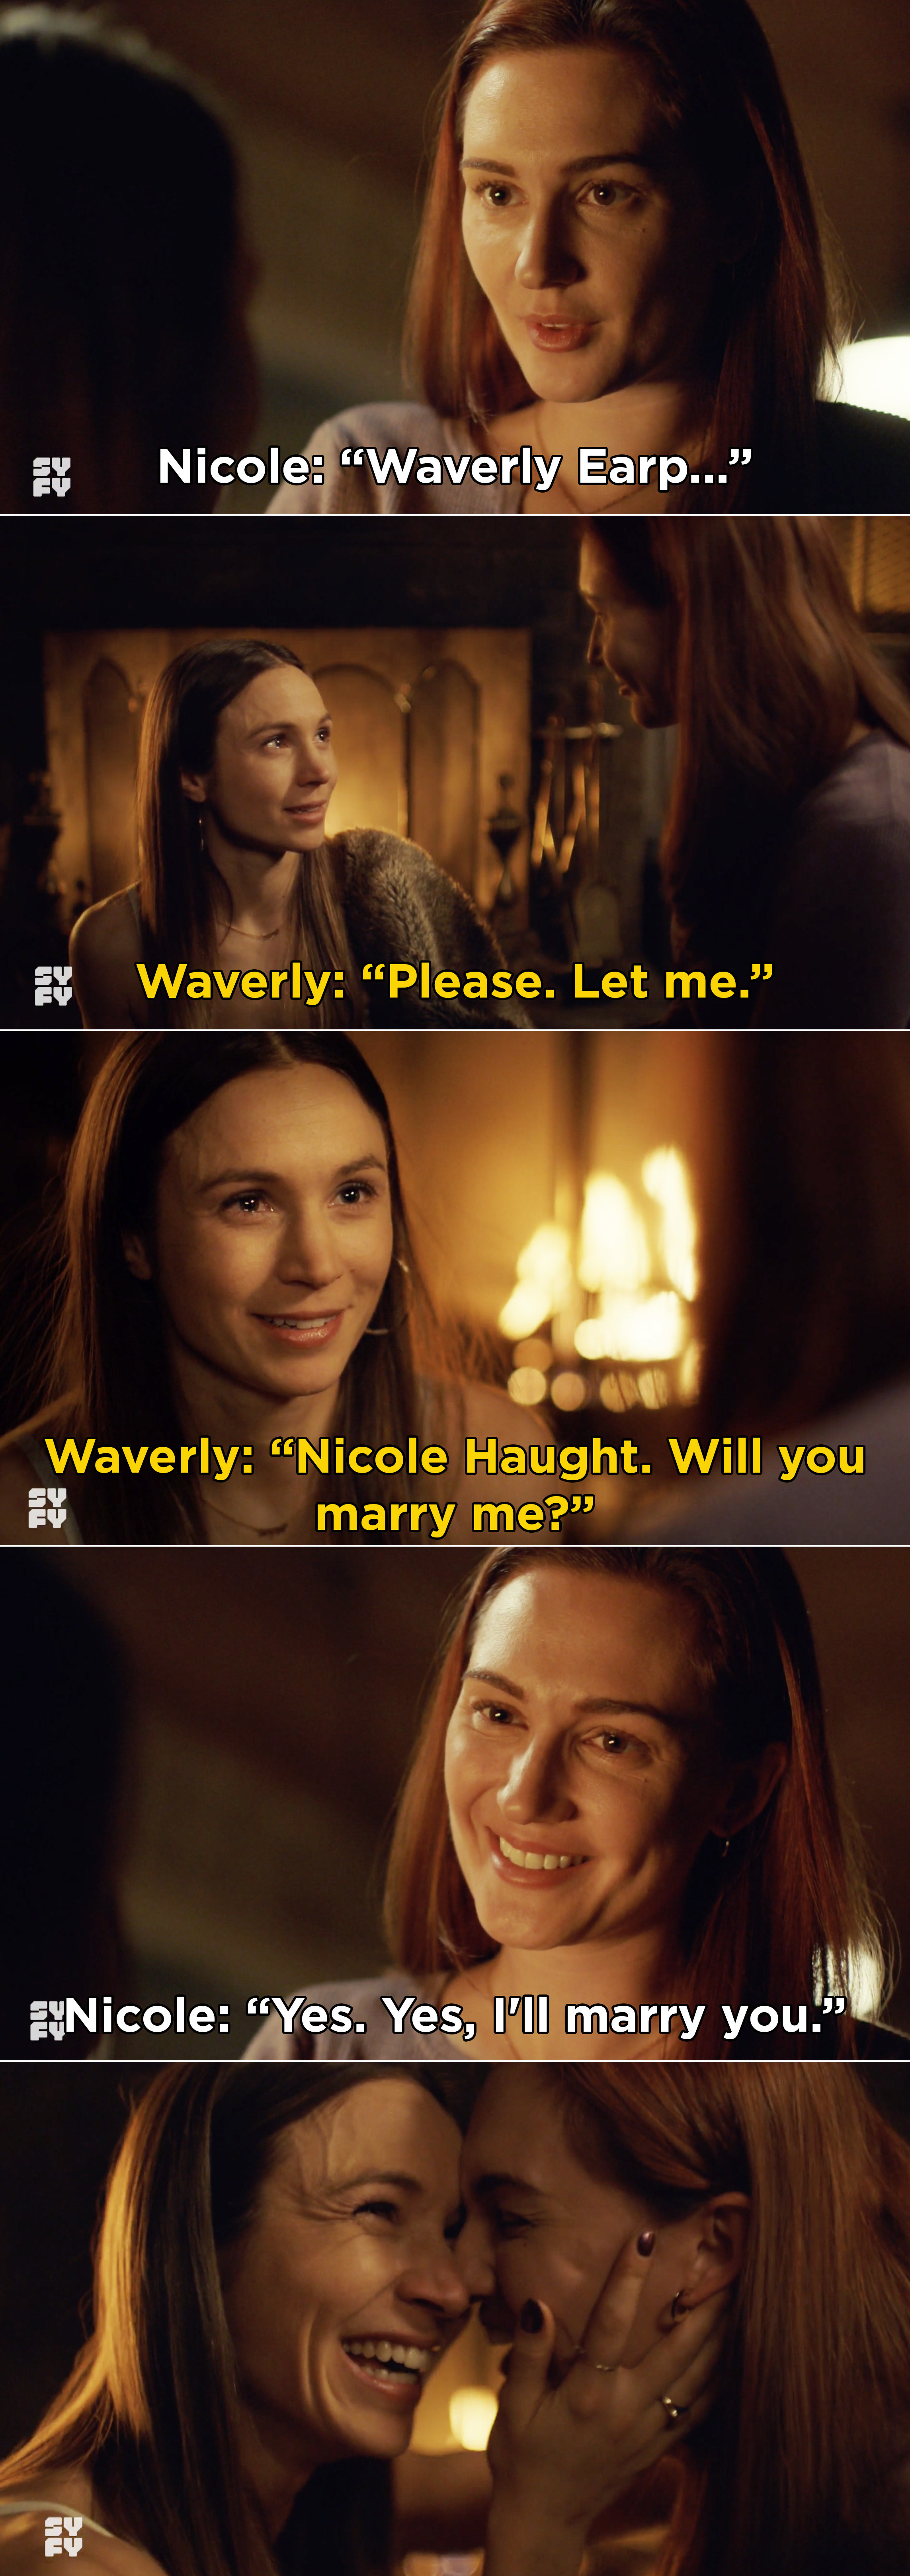 Waverly and Nicole proposing to each other